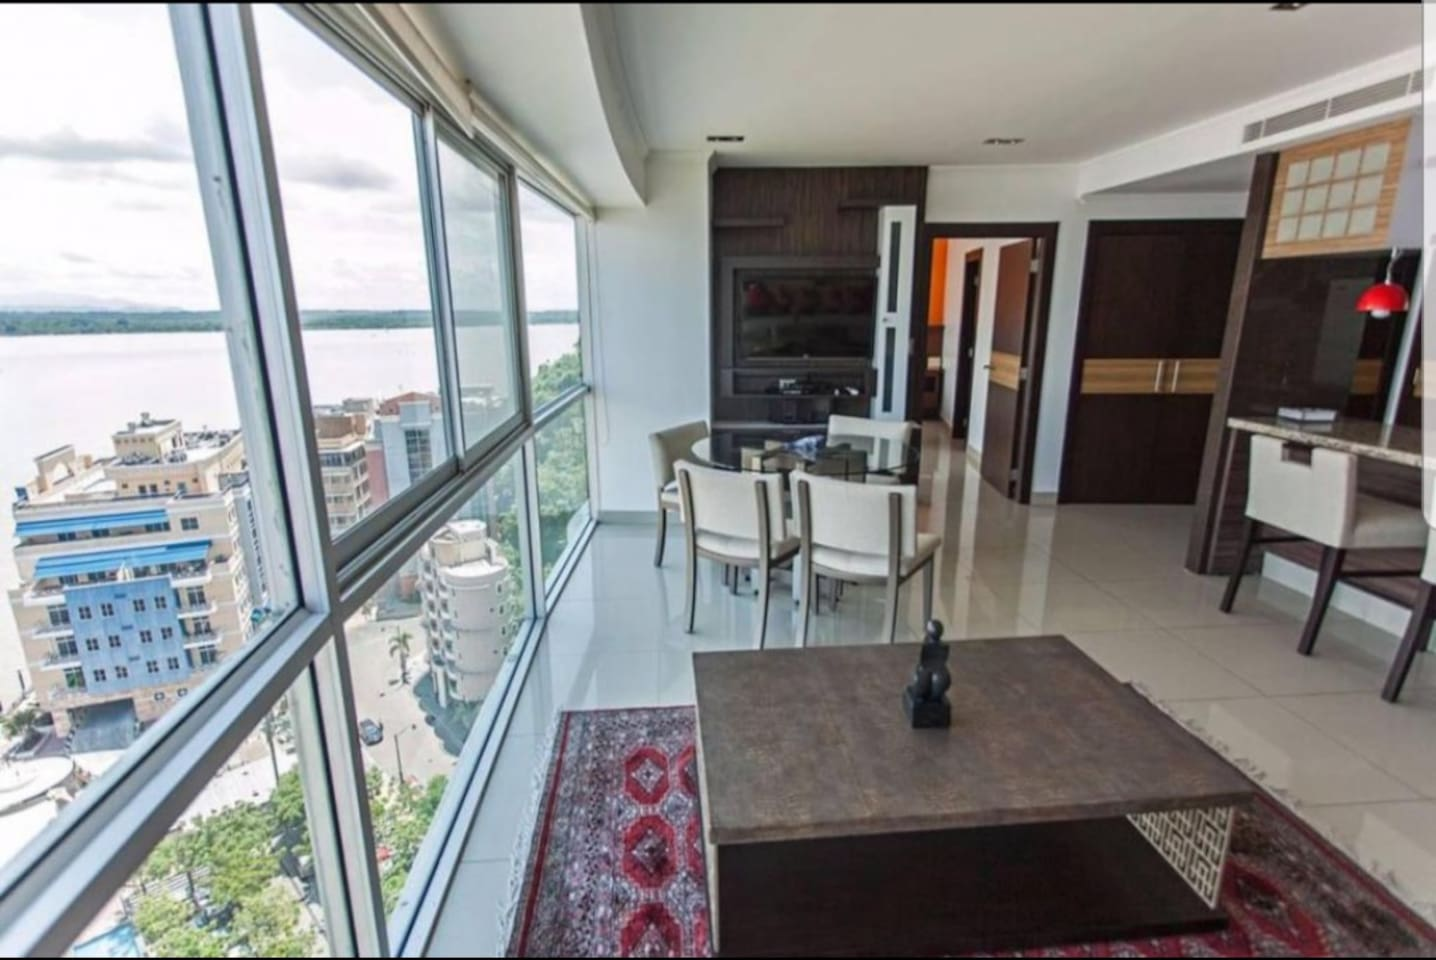 Luxury Penthouse Dept, 2.5  Bathrooms, 2 Bedrooms with fantastic river views